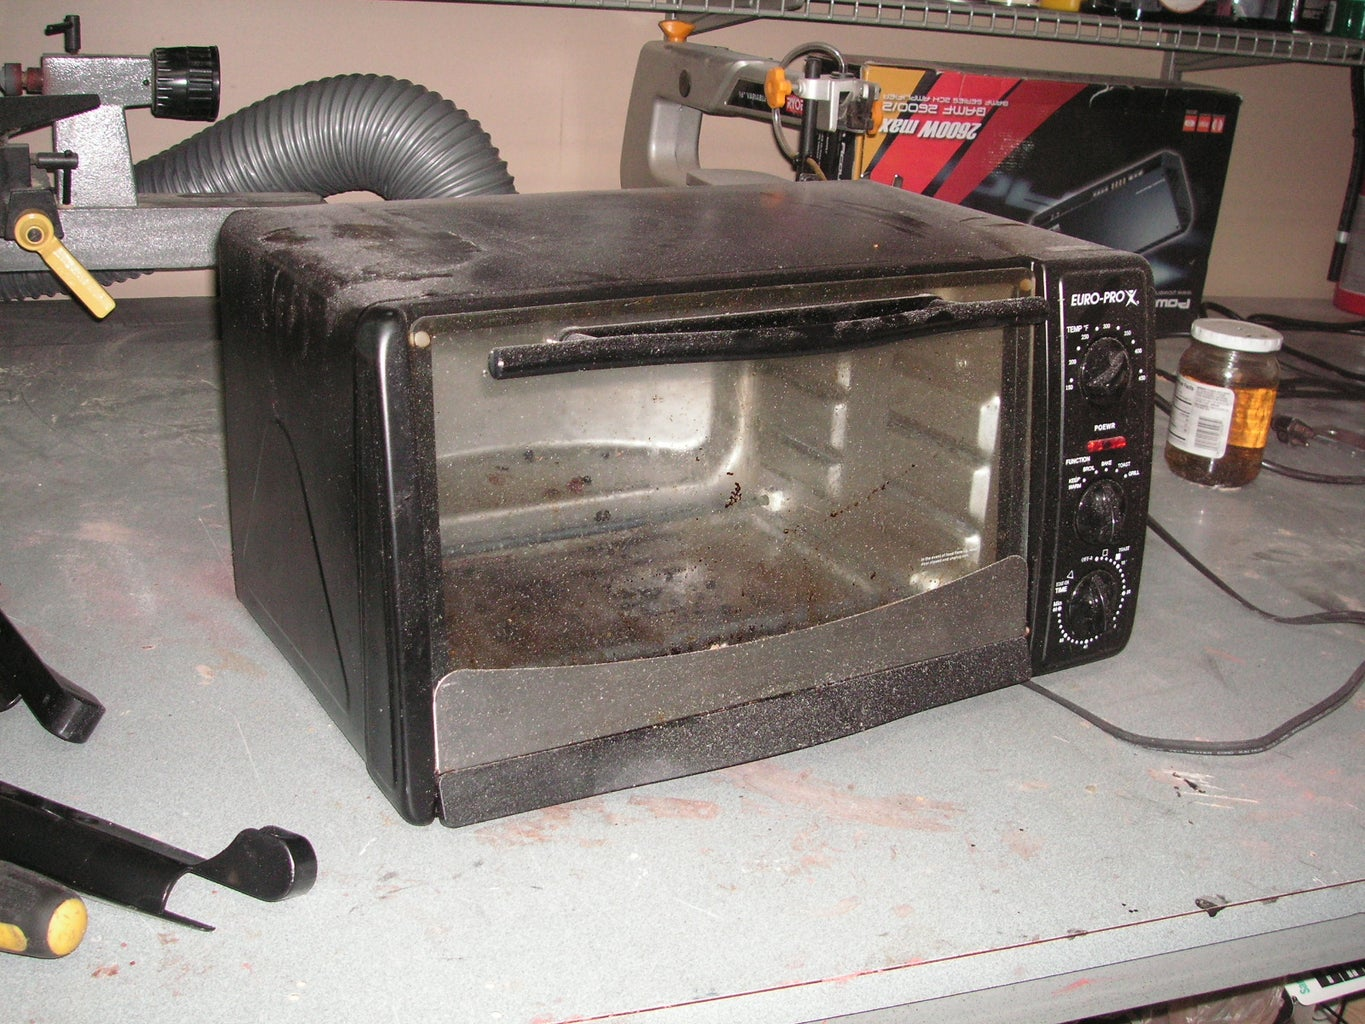 Thrift Store Scrounging -or- Sourcing Appliances